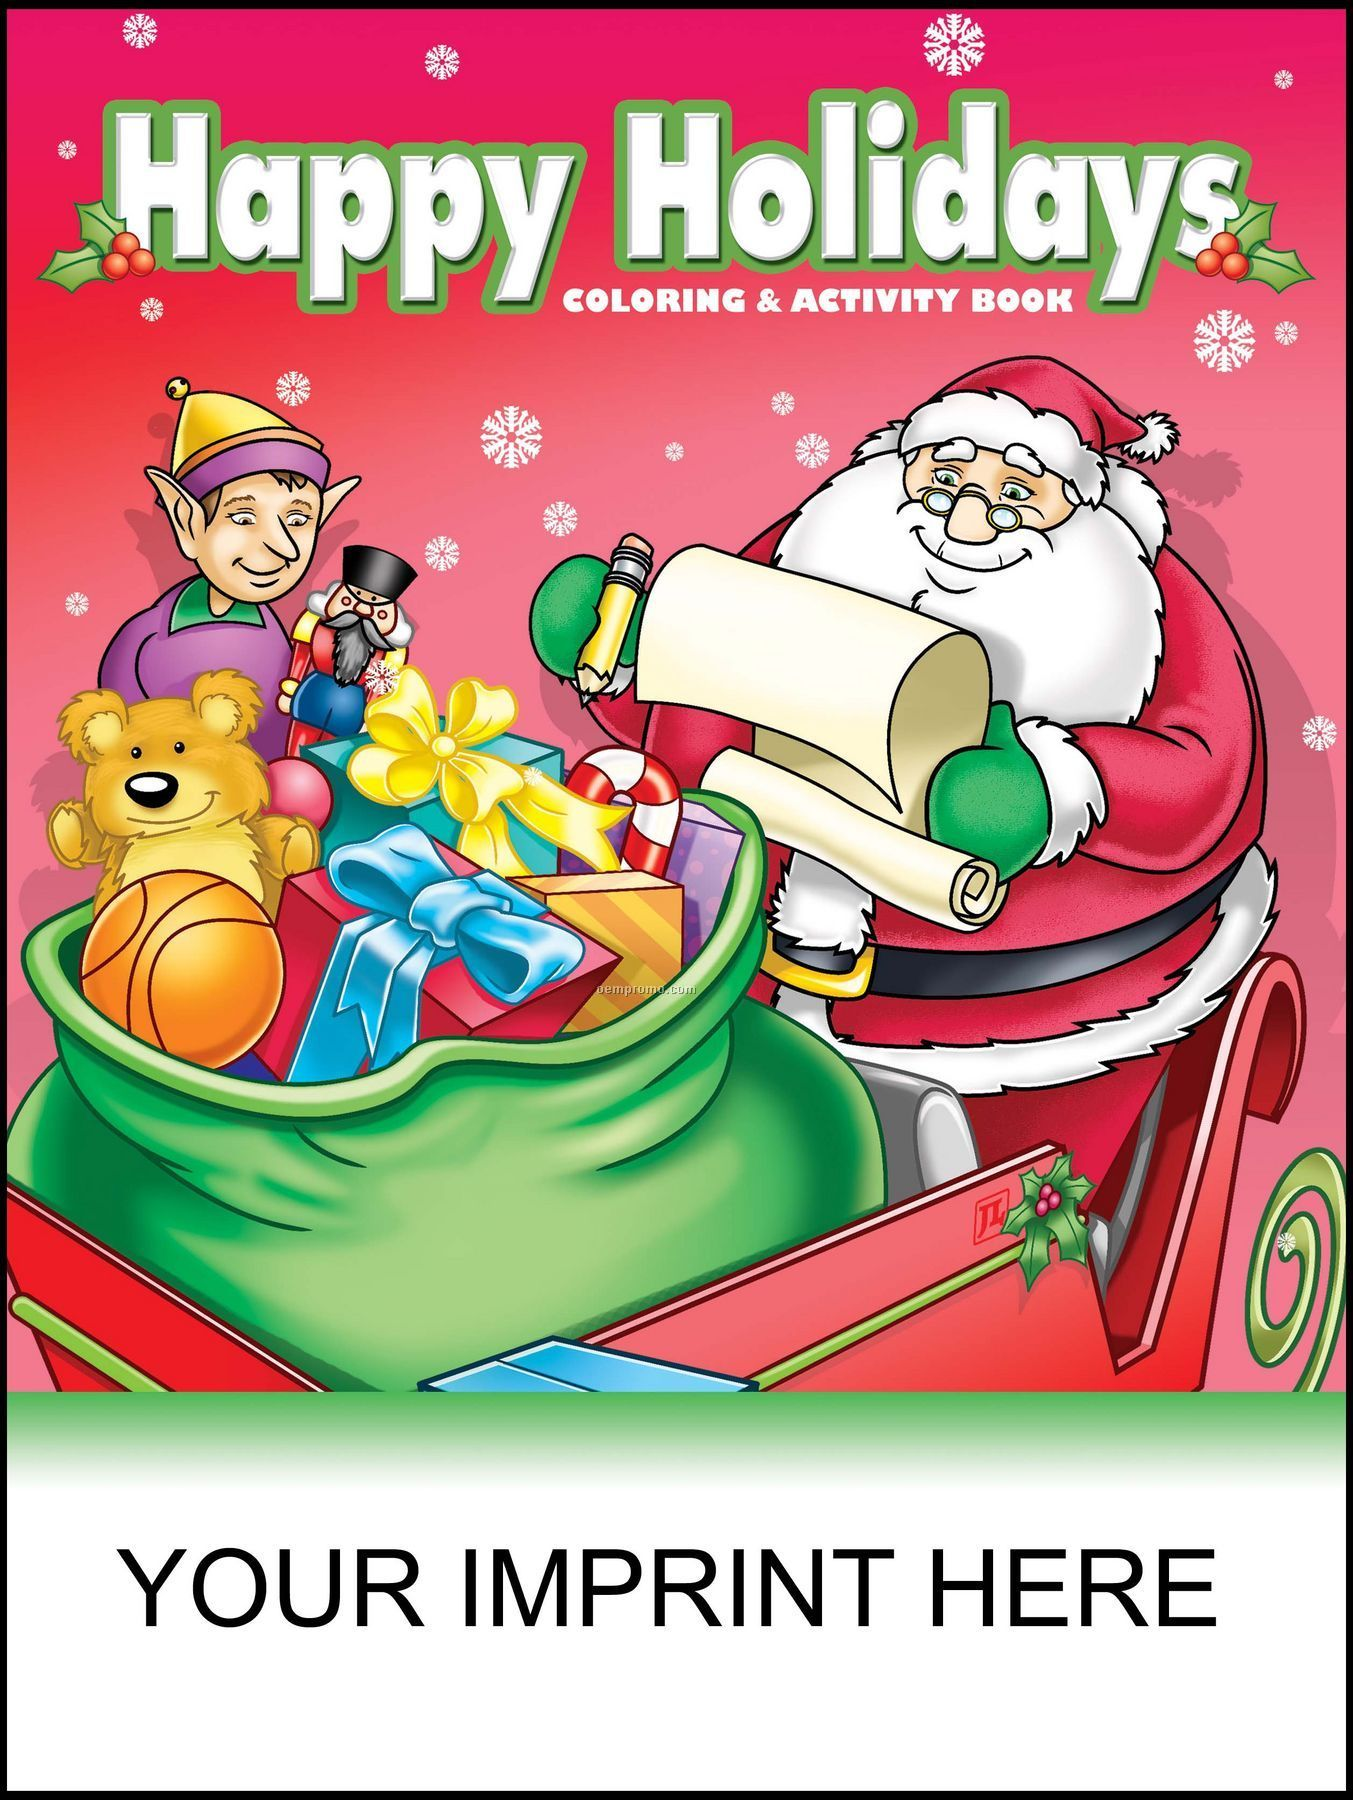 Happy Holidays Coloring & Activity Book - Santa Holding List